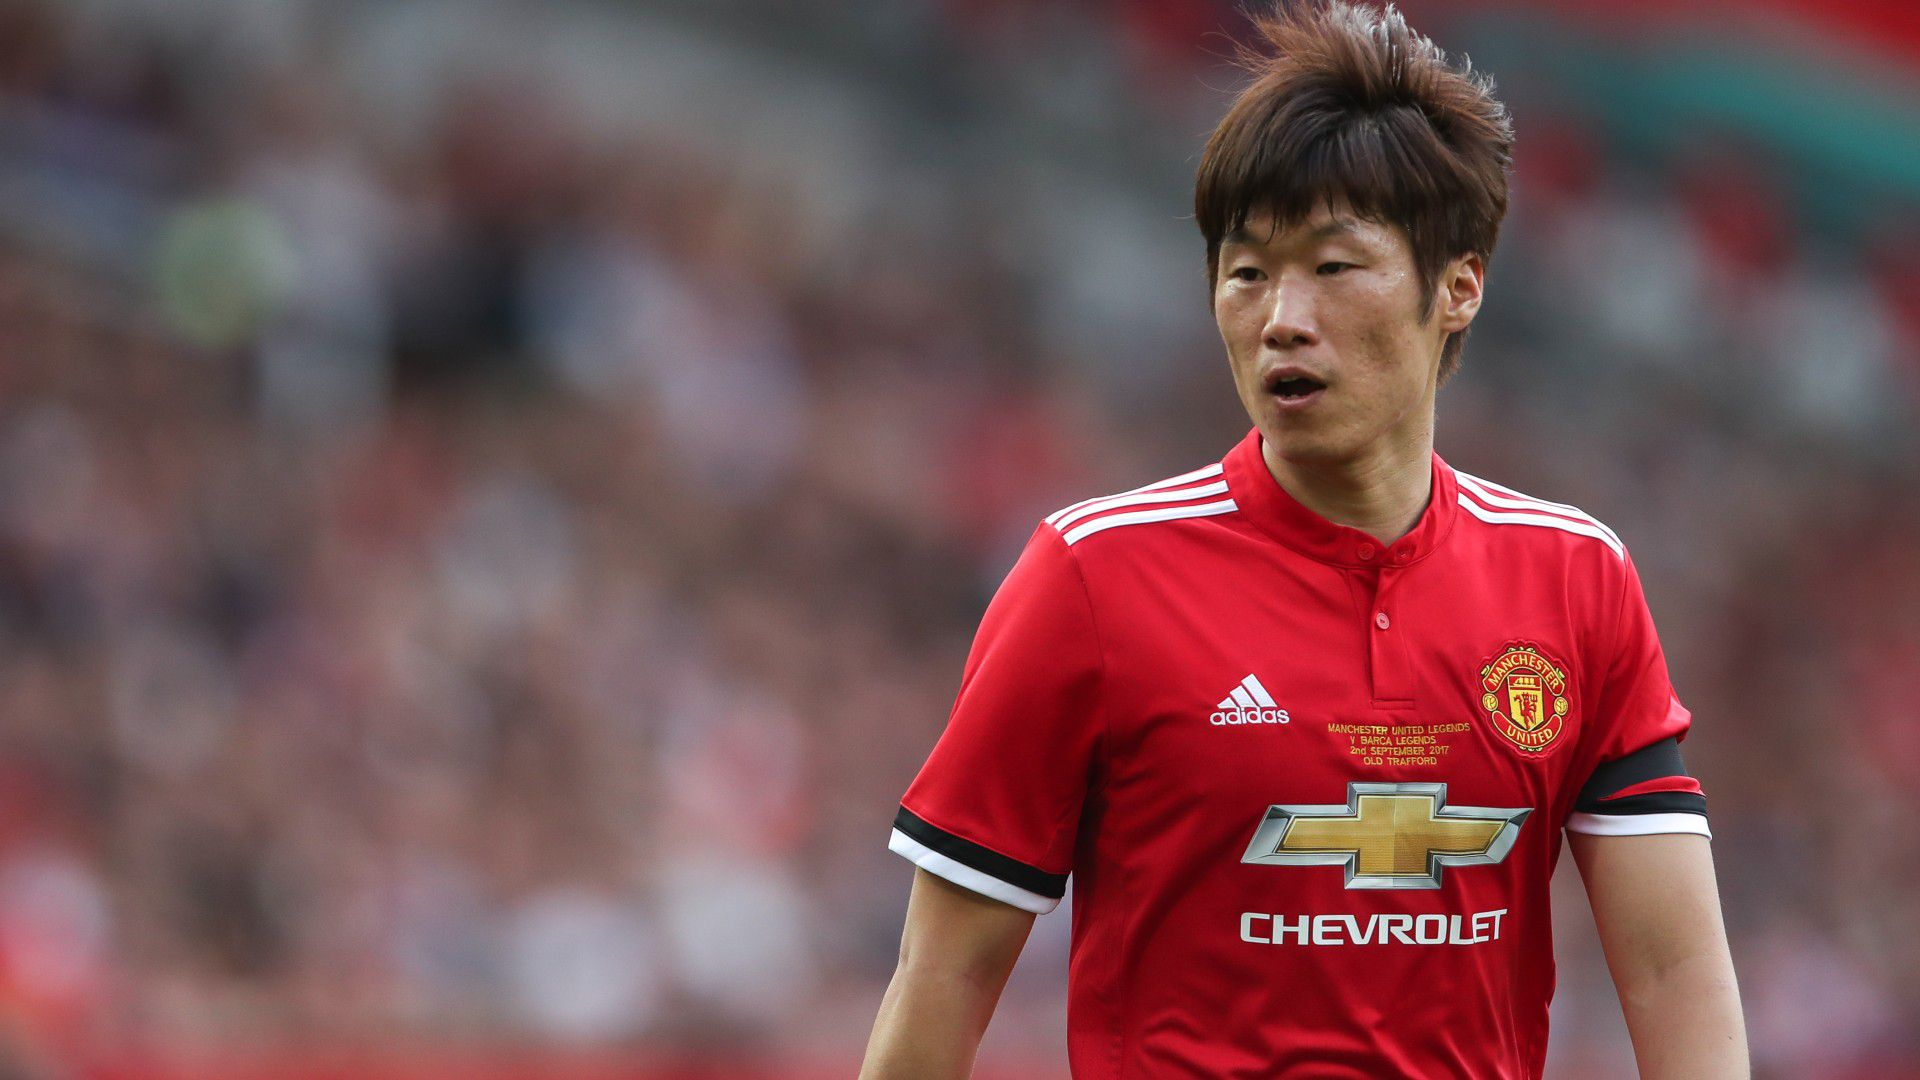 Park appeals to Man U fans to stop singing offensive song